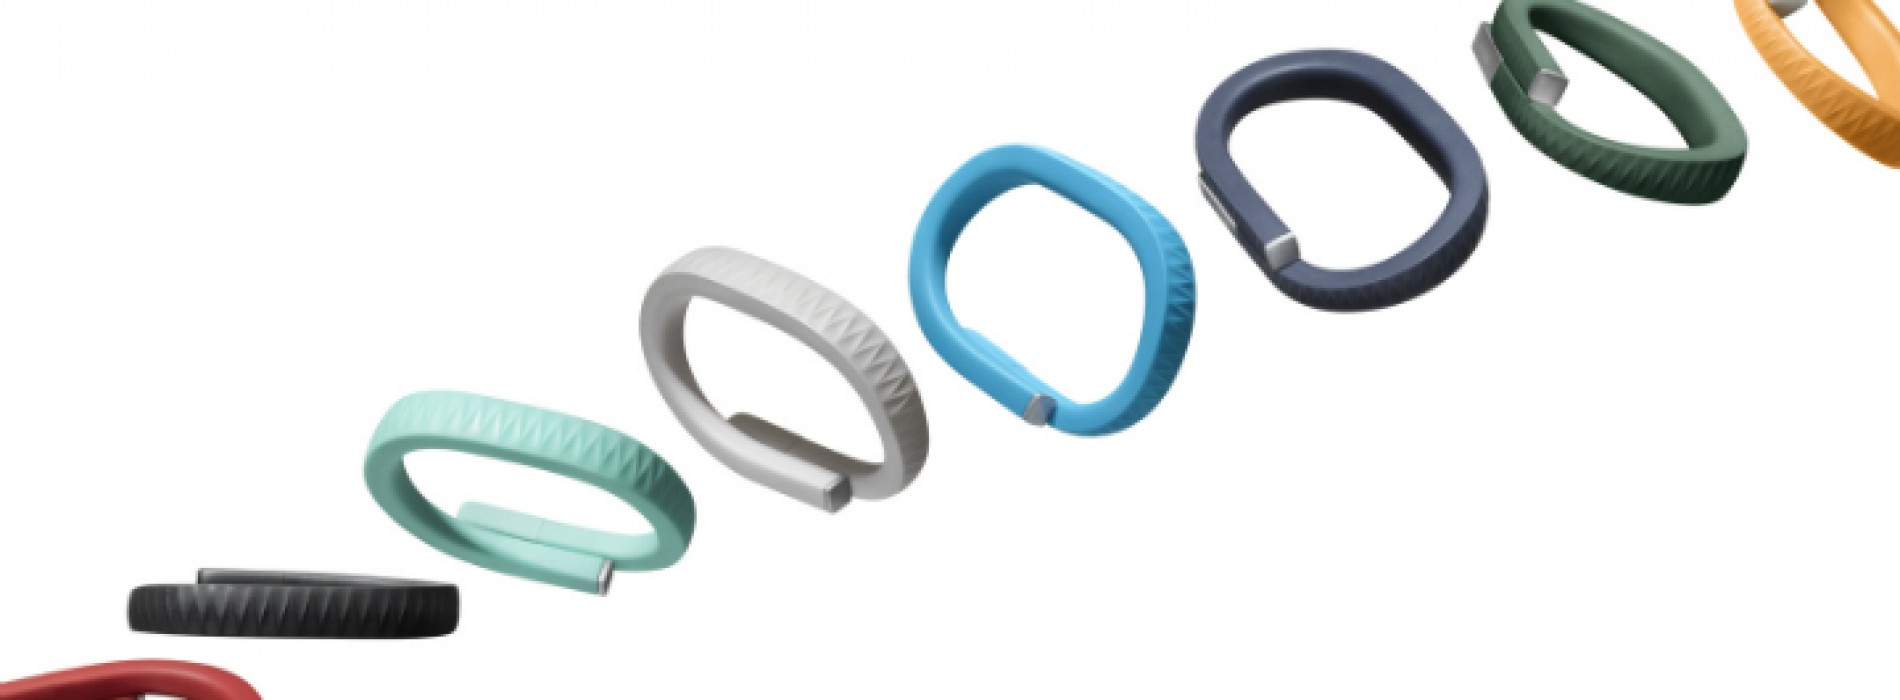 Jawbone UP app arrives for select Android devices